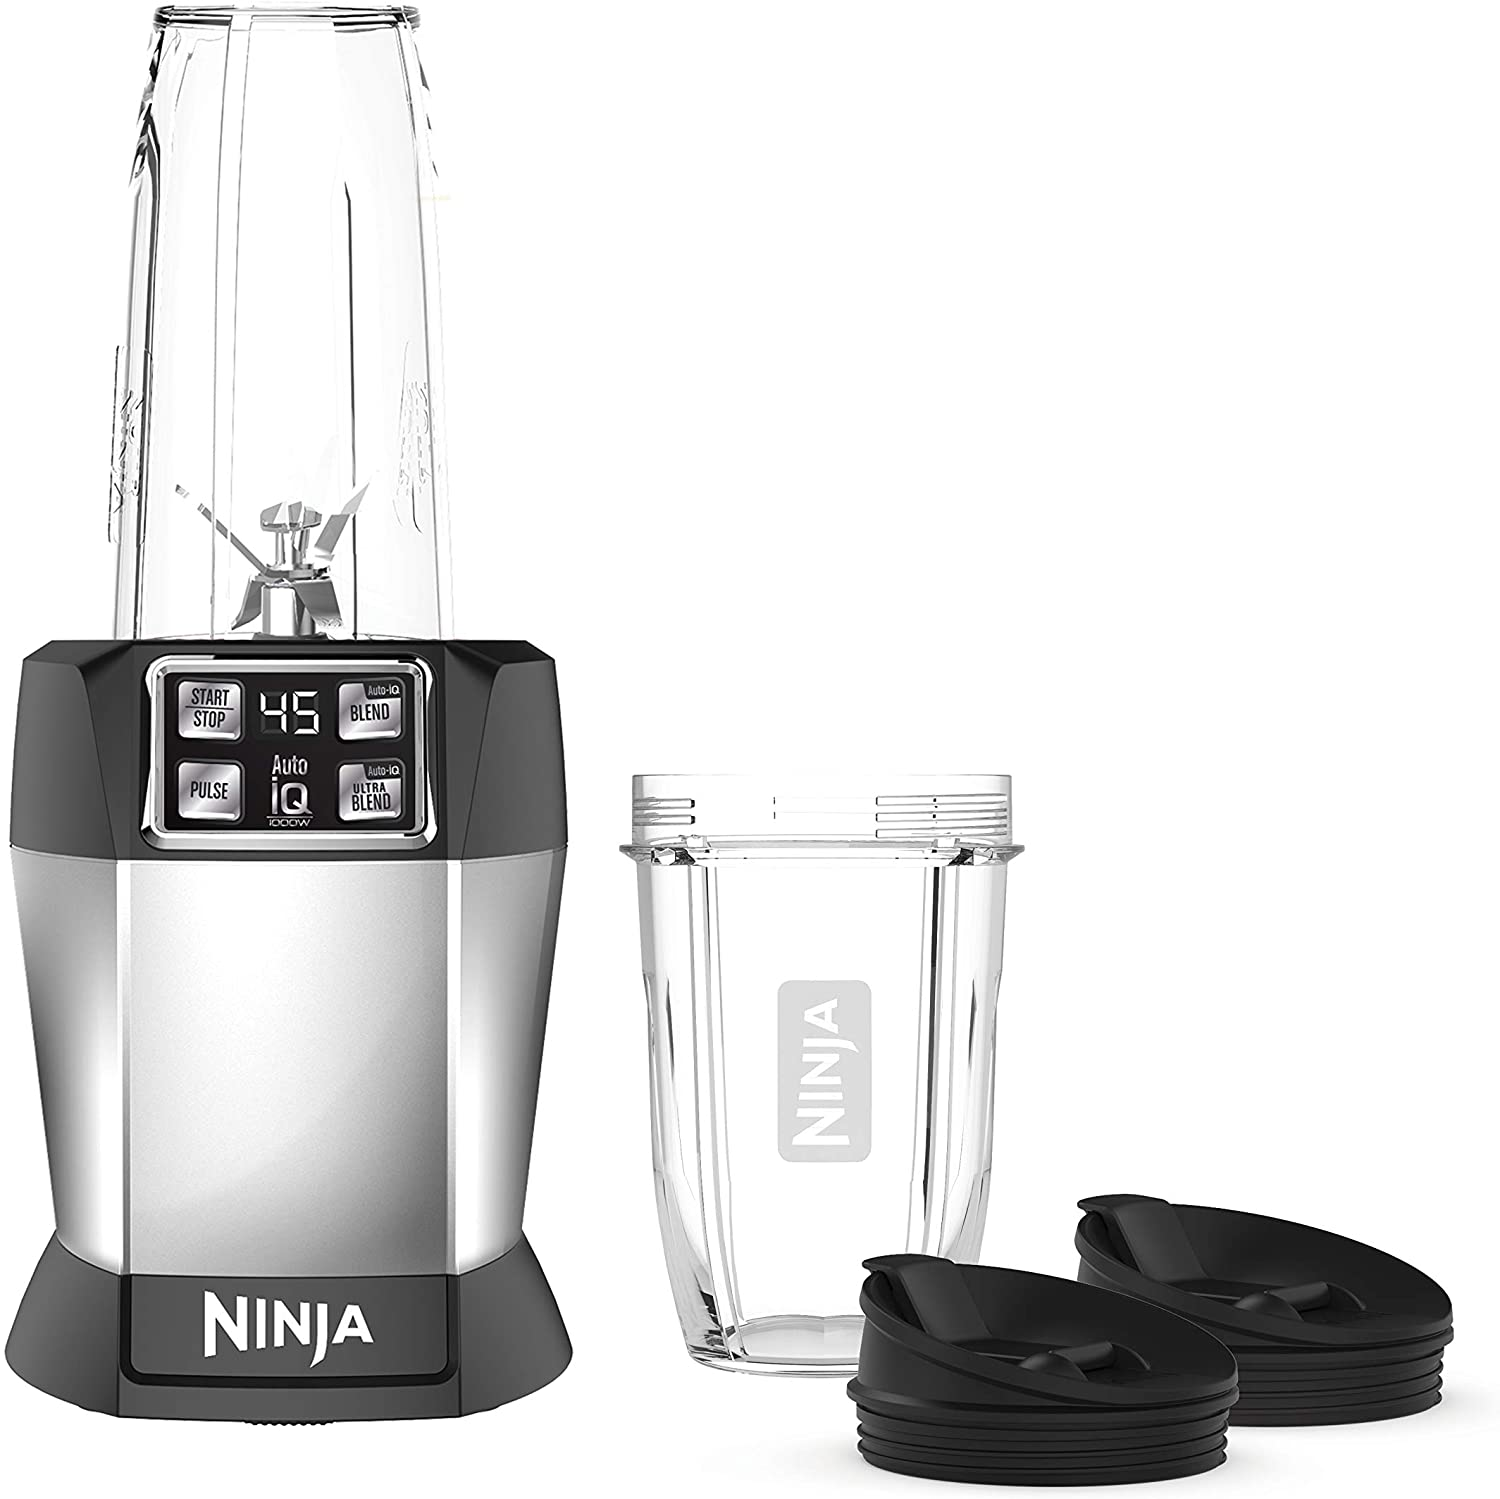 Ninja BL480D Nutri 1000 Watt Auto-IQ Base for Juices, Shakes & Smoothies Personal Blender, 18 and 24 Oz, Black/Silver